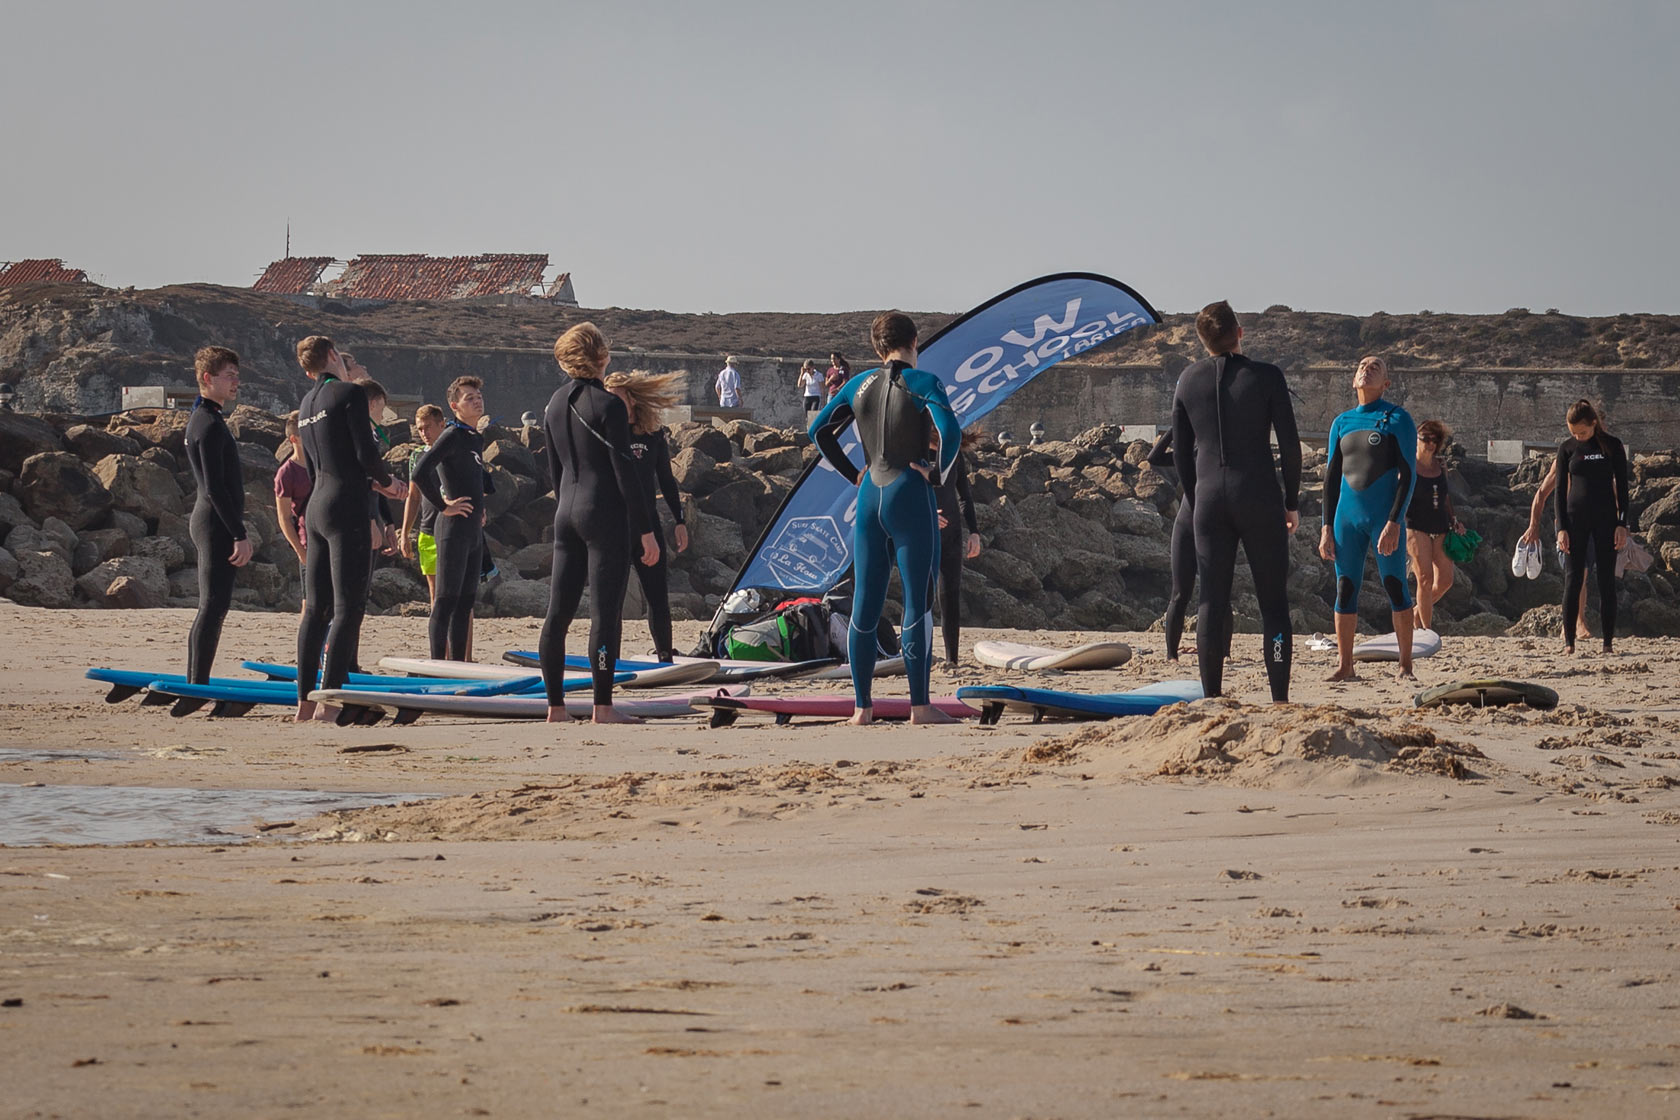 Group Surfing Teambuilding